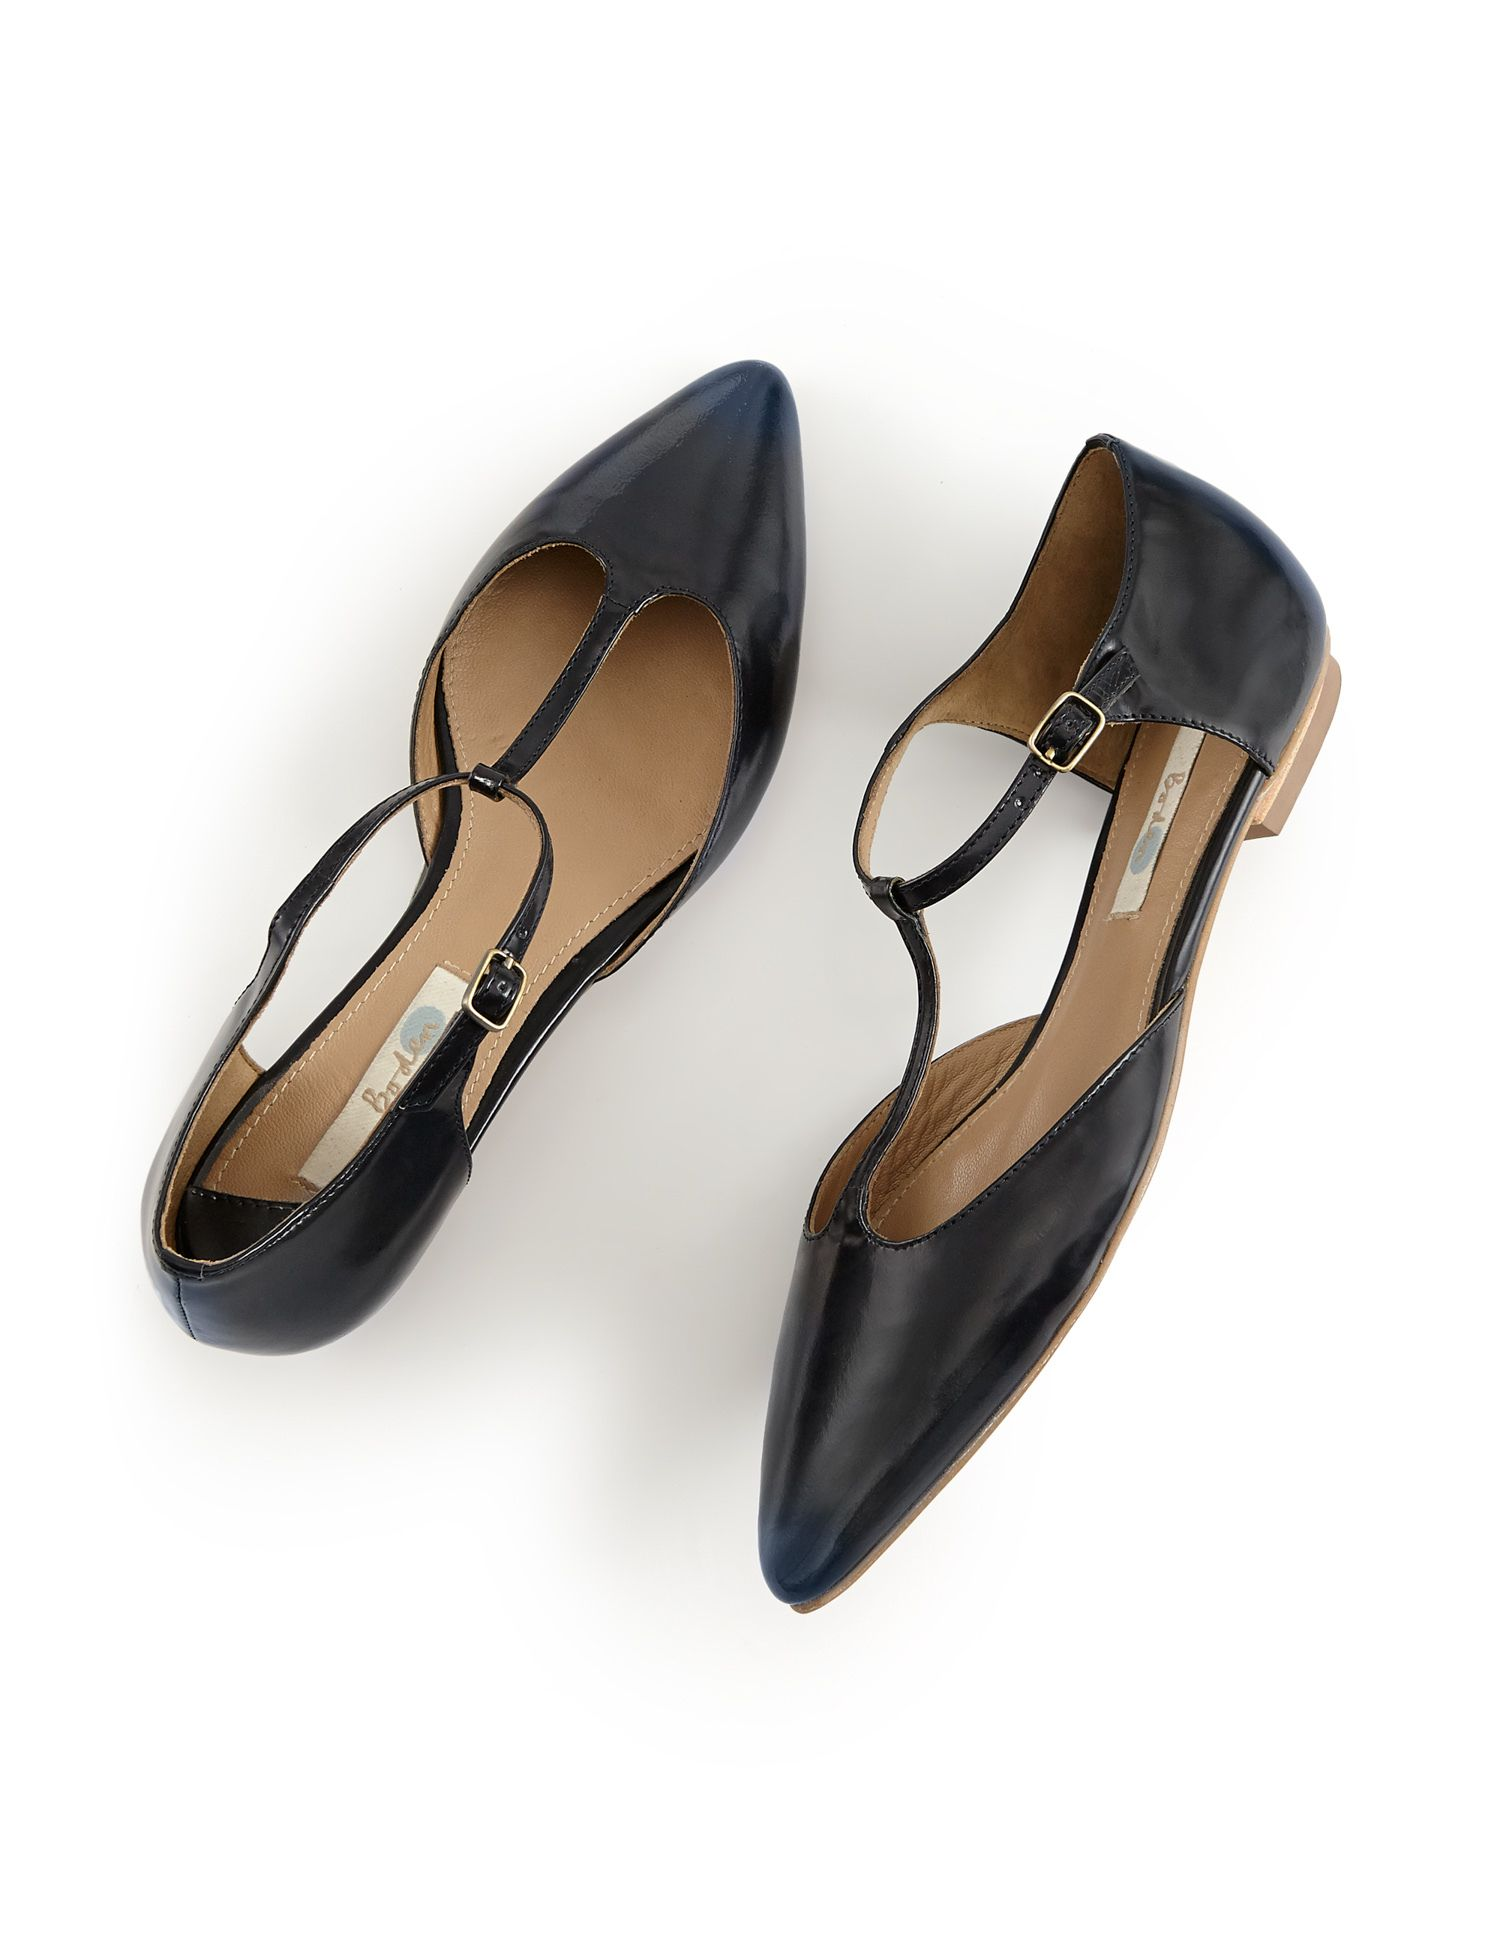 00c36513a323 Wear our flat t-bar pointed shoes with grey cotton tights this autumn for a  stylish